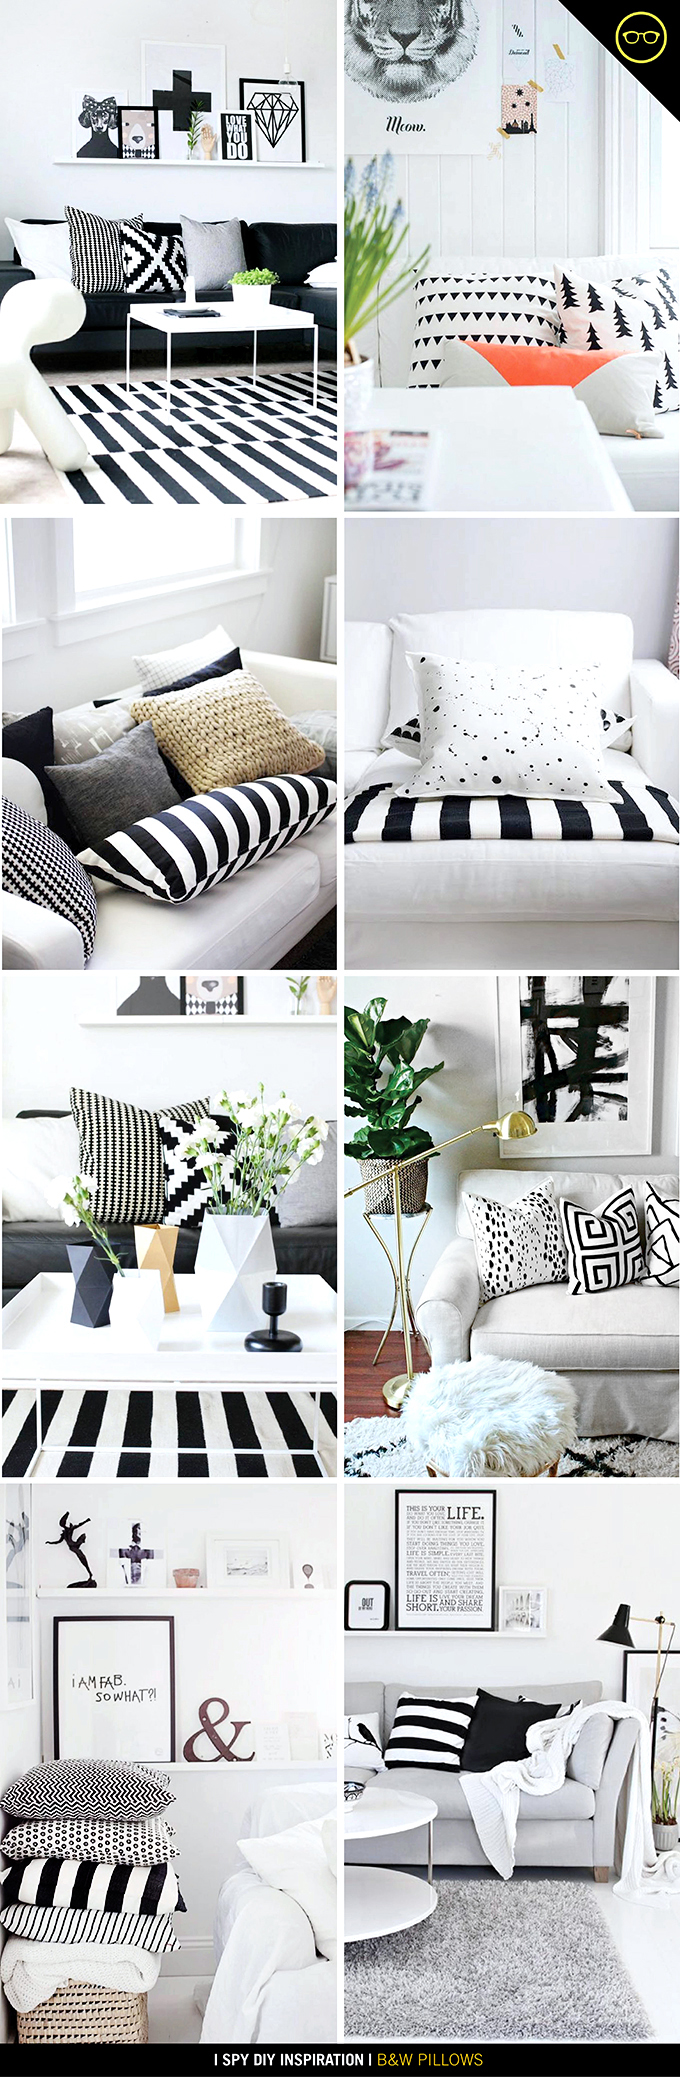 Ispydiy_bwpillows